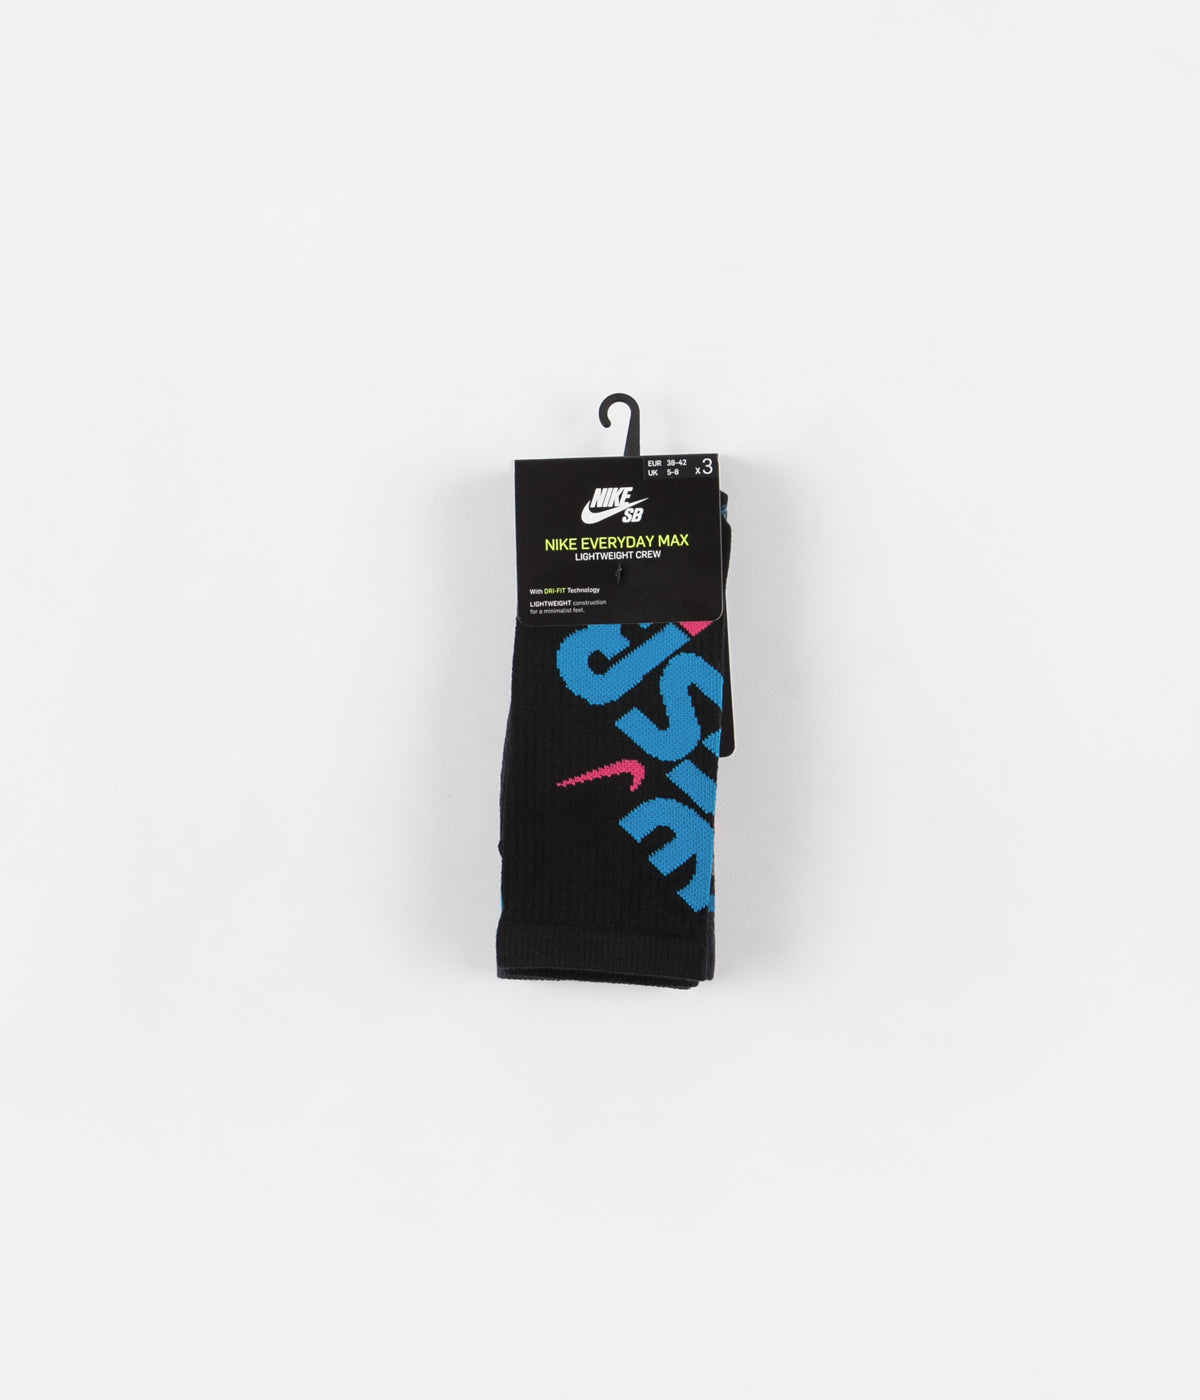 Nike SB Everyday Max Lightweight Crew Socks (3 Pair) - Black / Multicolour